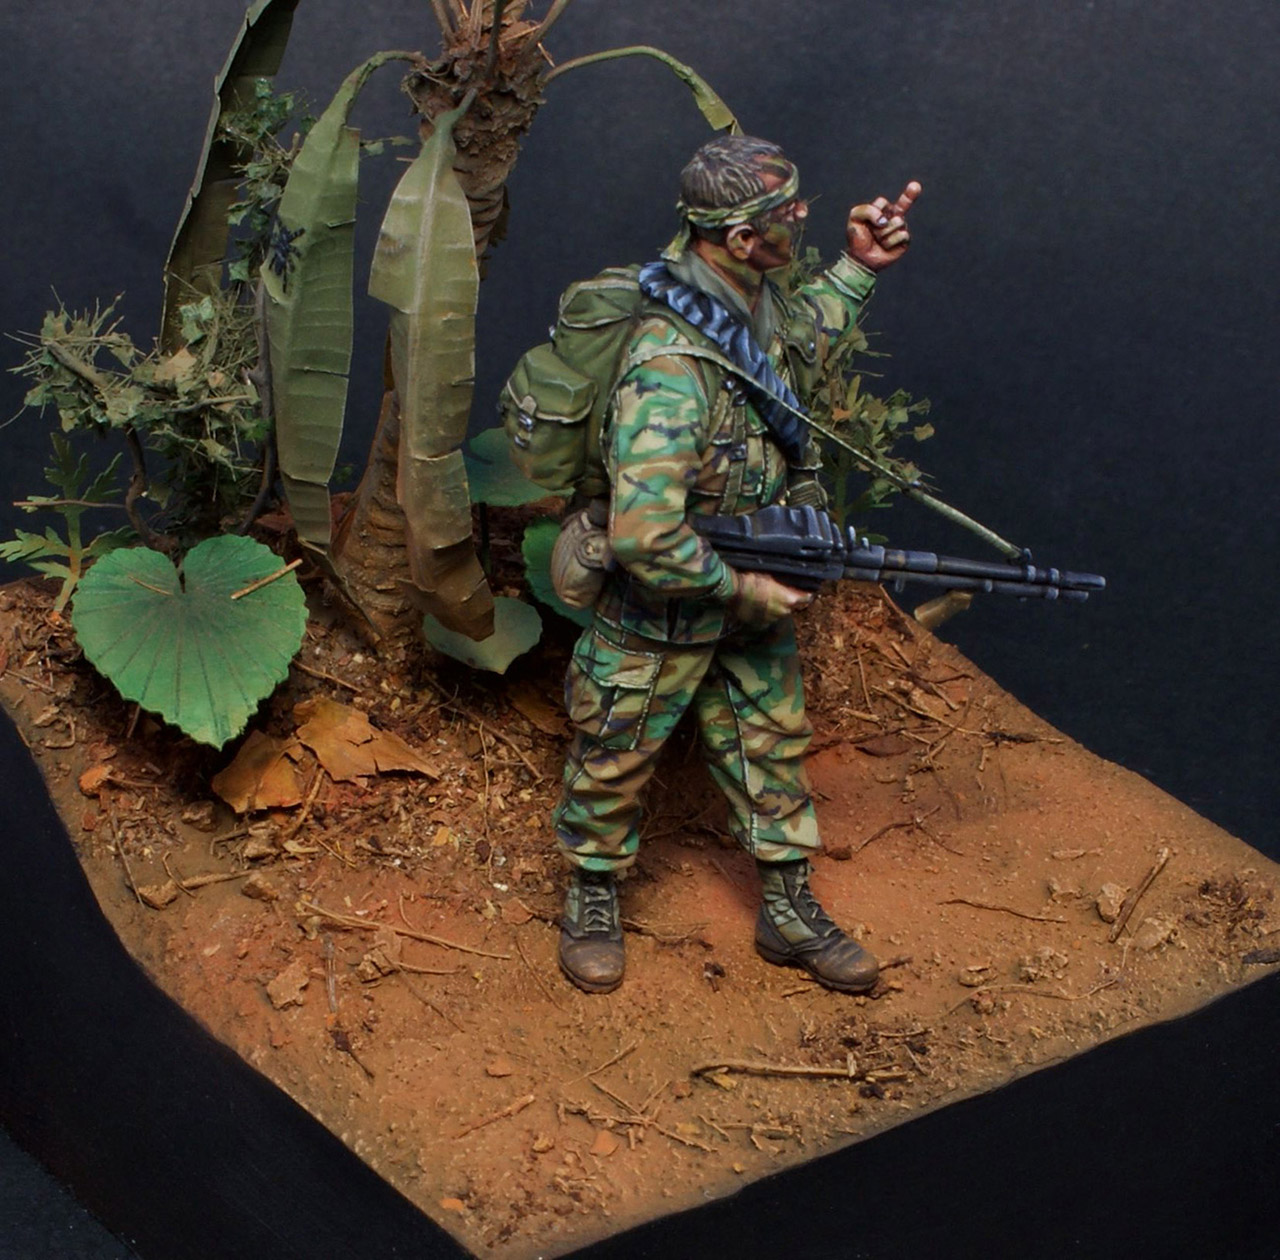 Dioramas and Vignettes: Best wishes, photo #9